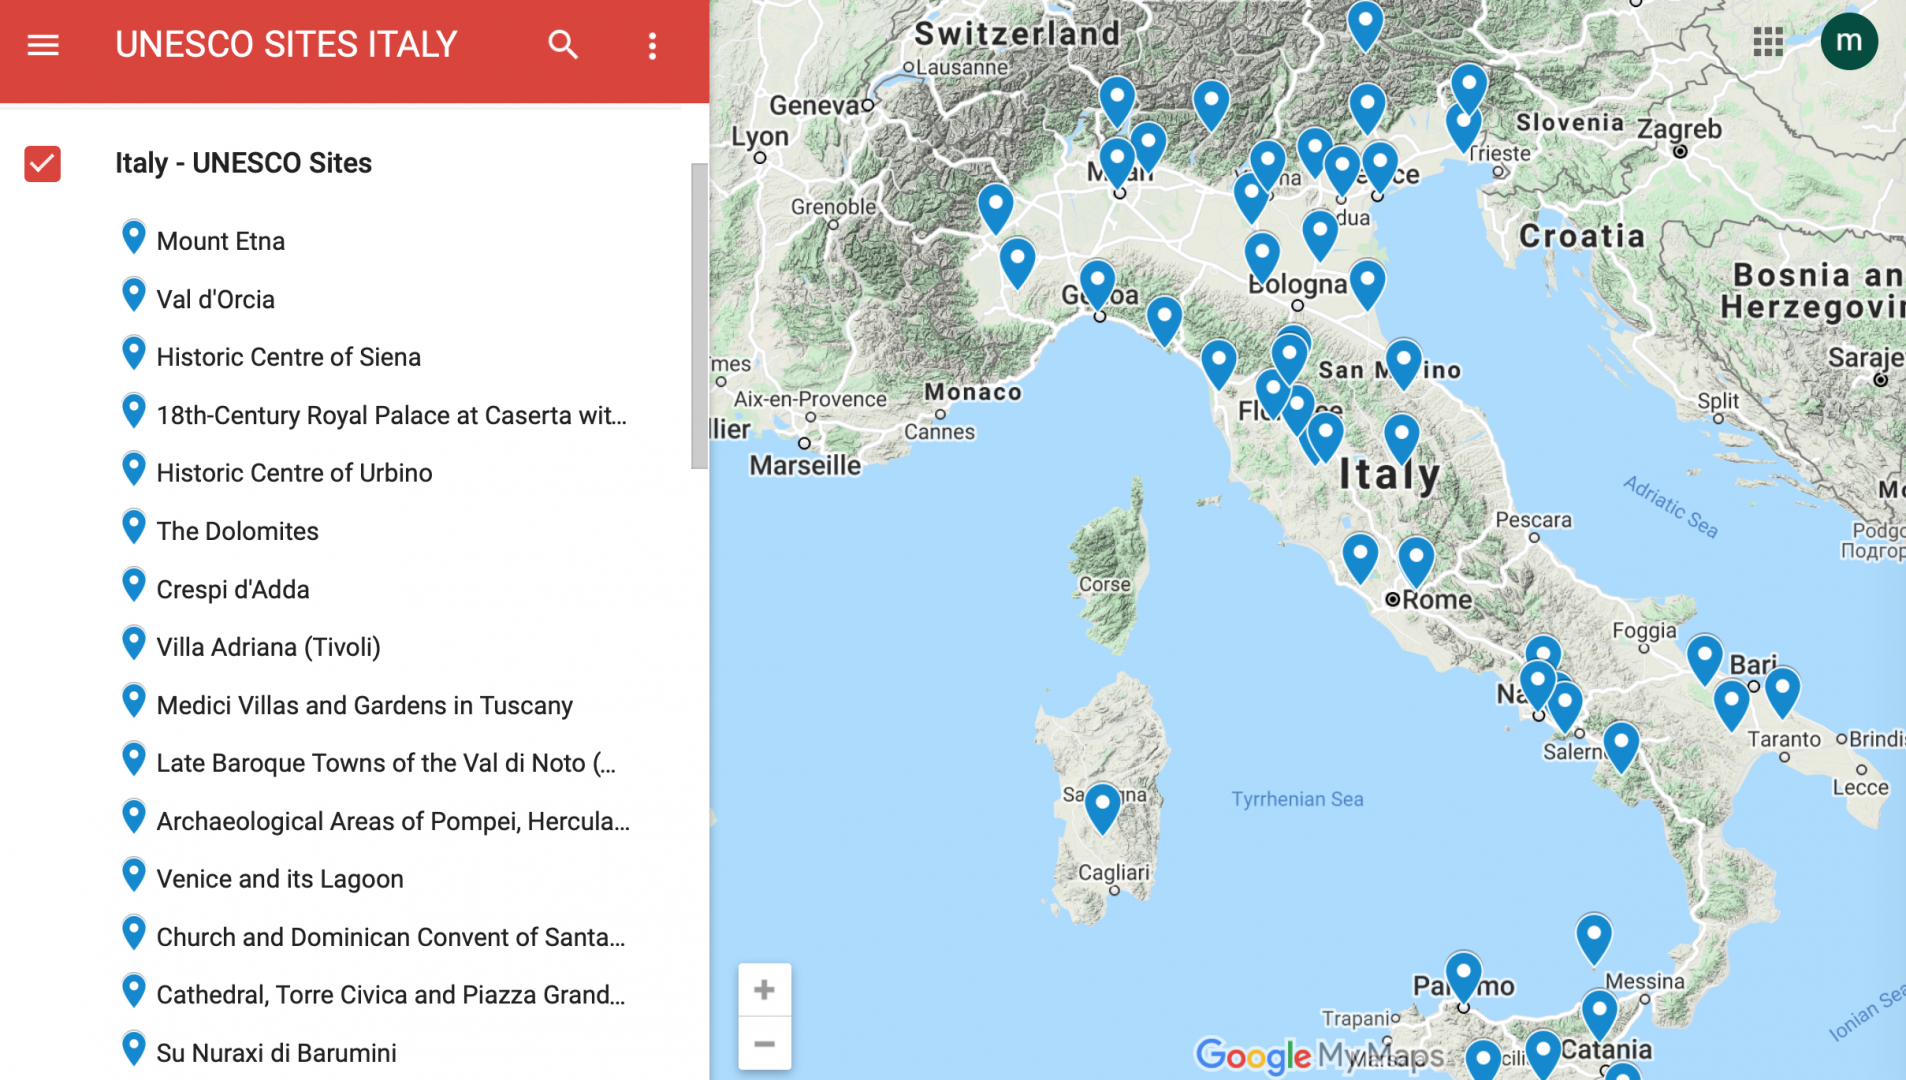 Screen-Shot-2021-02-11-at-13.02.43 Unesco World Heritage Sites in Italy